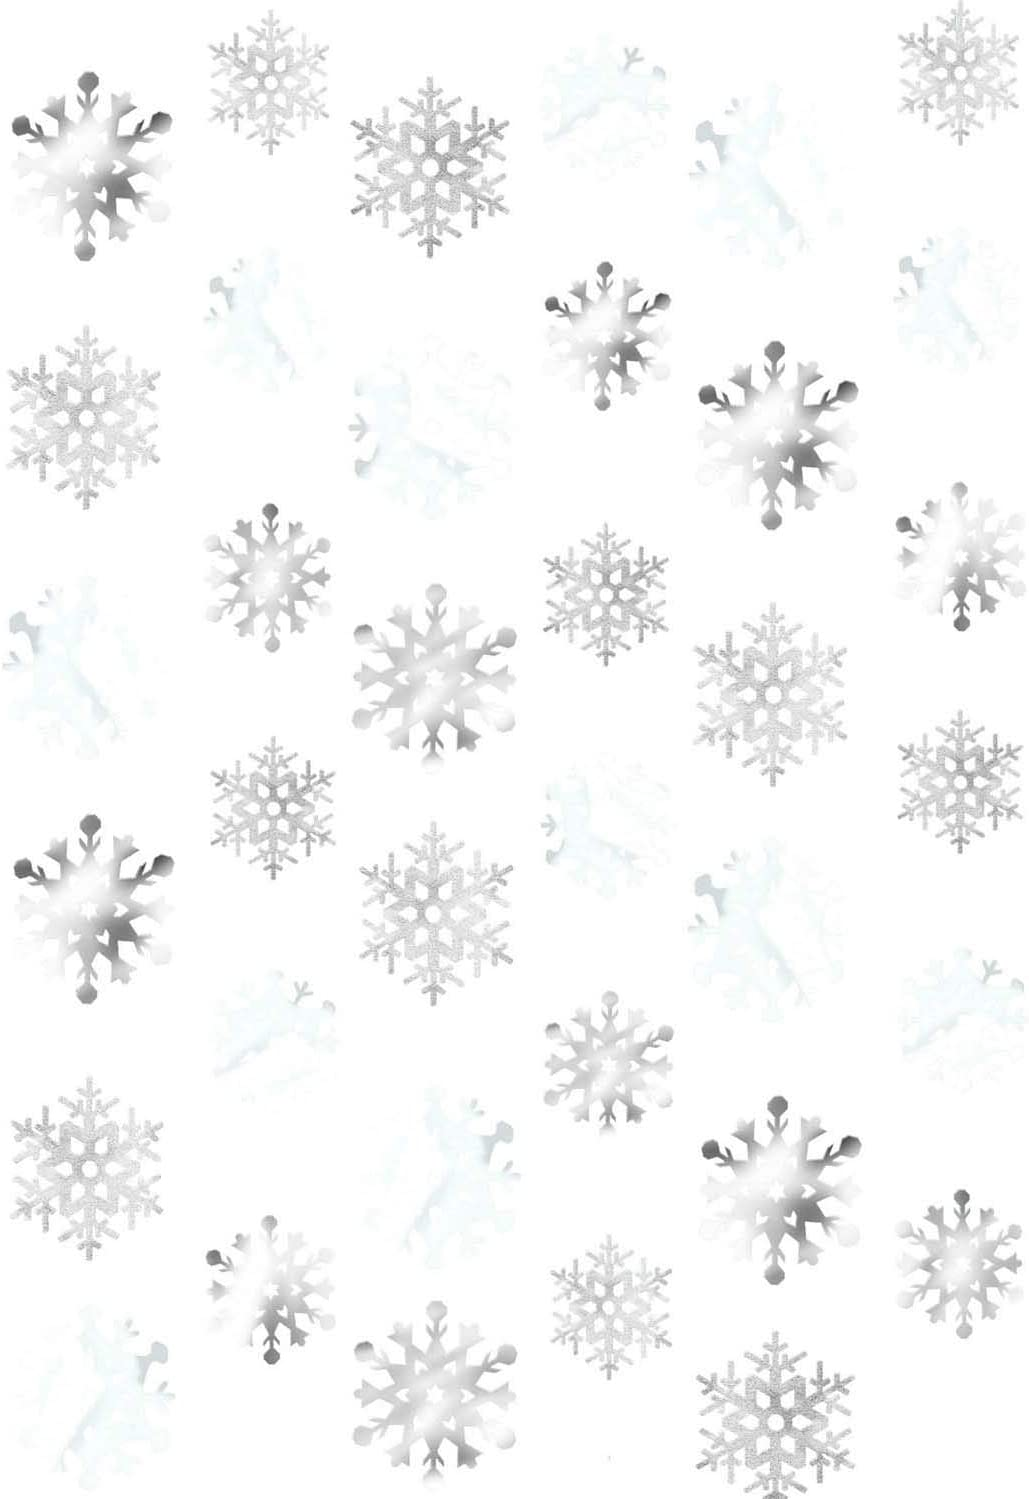 Amscan 672015 Christmas Snowflake String Foil, 6 Ct. | Party Decoration 7'